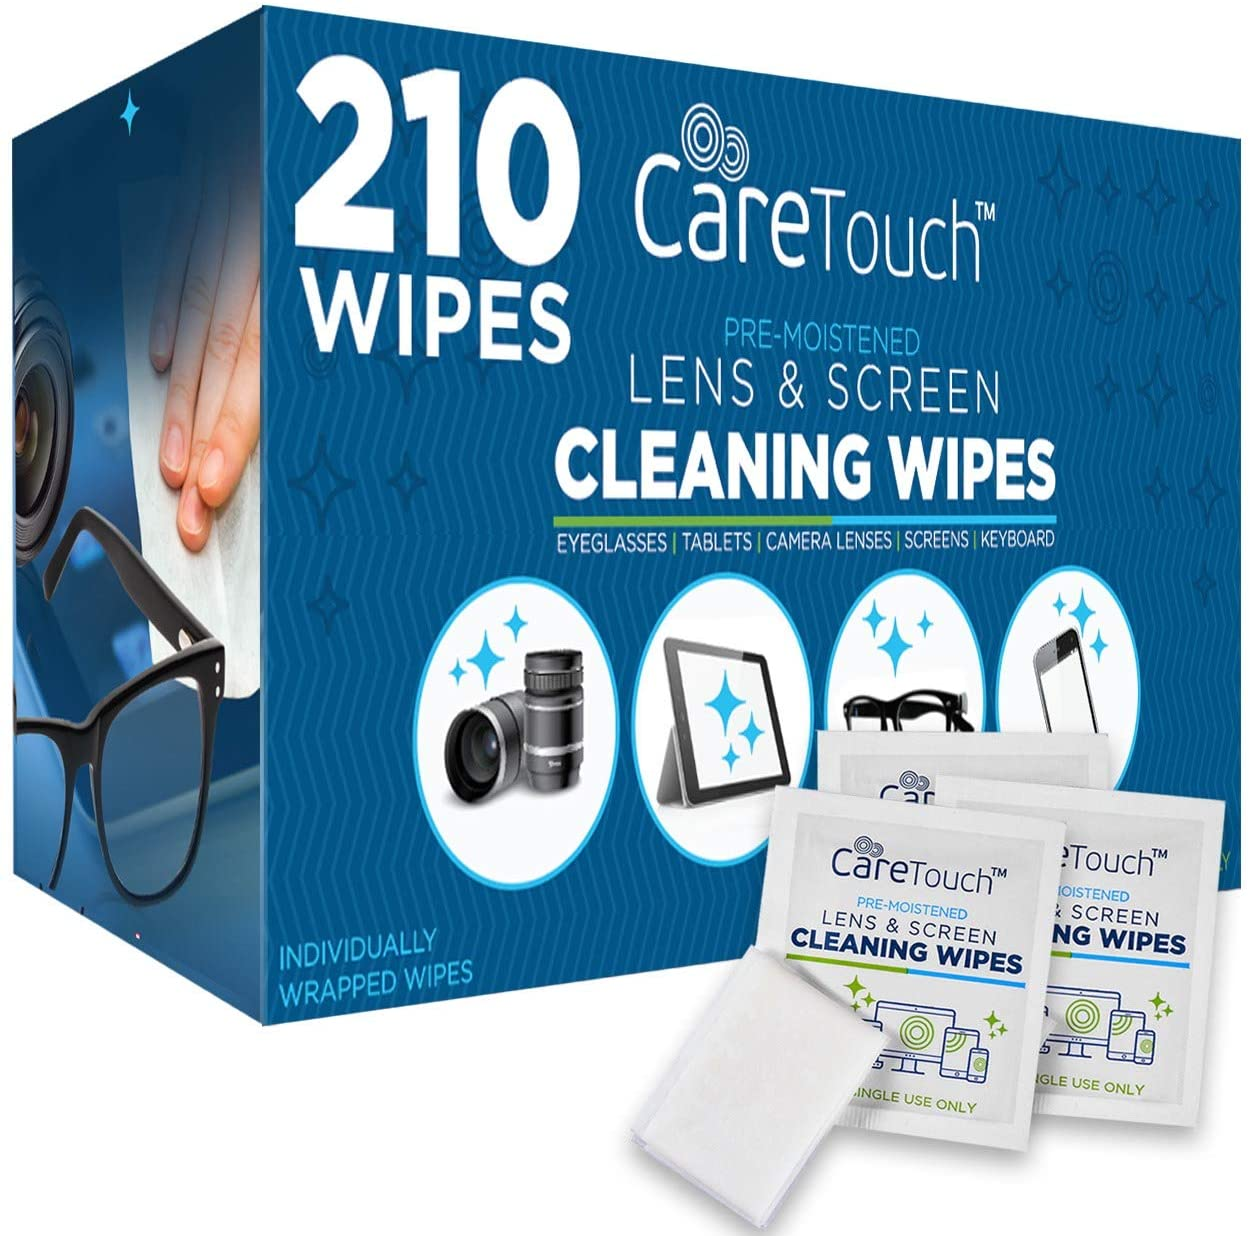 The Best Travel Photography Gear: What's In My Camera Bag | Care Touch Lens Cleaning Wipes - 210 Pre-Moistened and Individually Wrapped Lens Cleaning Wipes - Great for Eyeglasses, Tablets, Camera Lenses, Screens, Keyboards and Delicate Surfaces